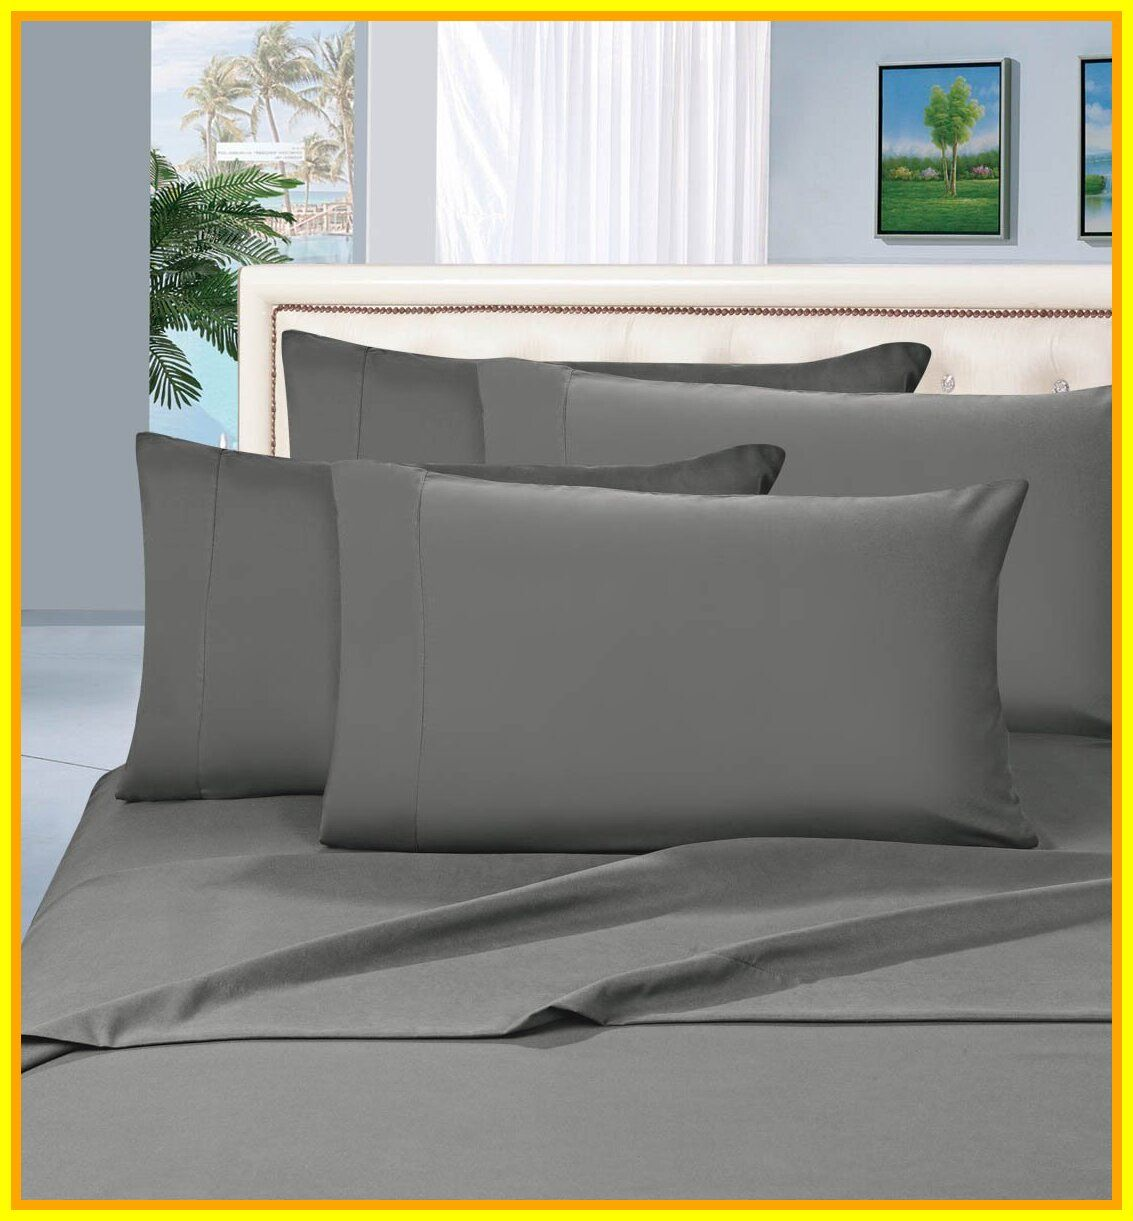 61 amazon bed sheets single #amazon #bed #sheets #single Please Click Link To Find More Reference,,, ENJOY!!